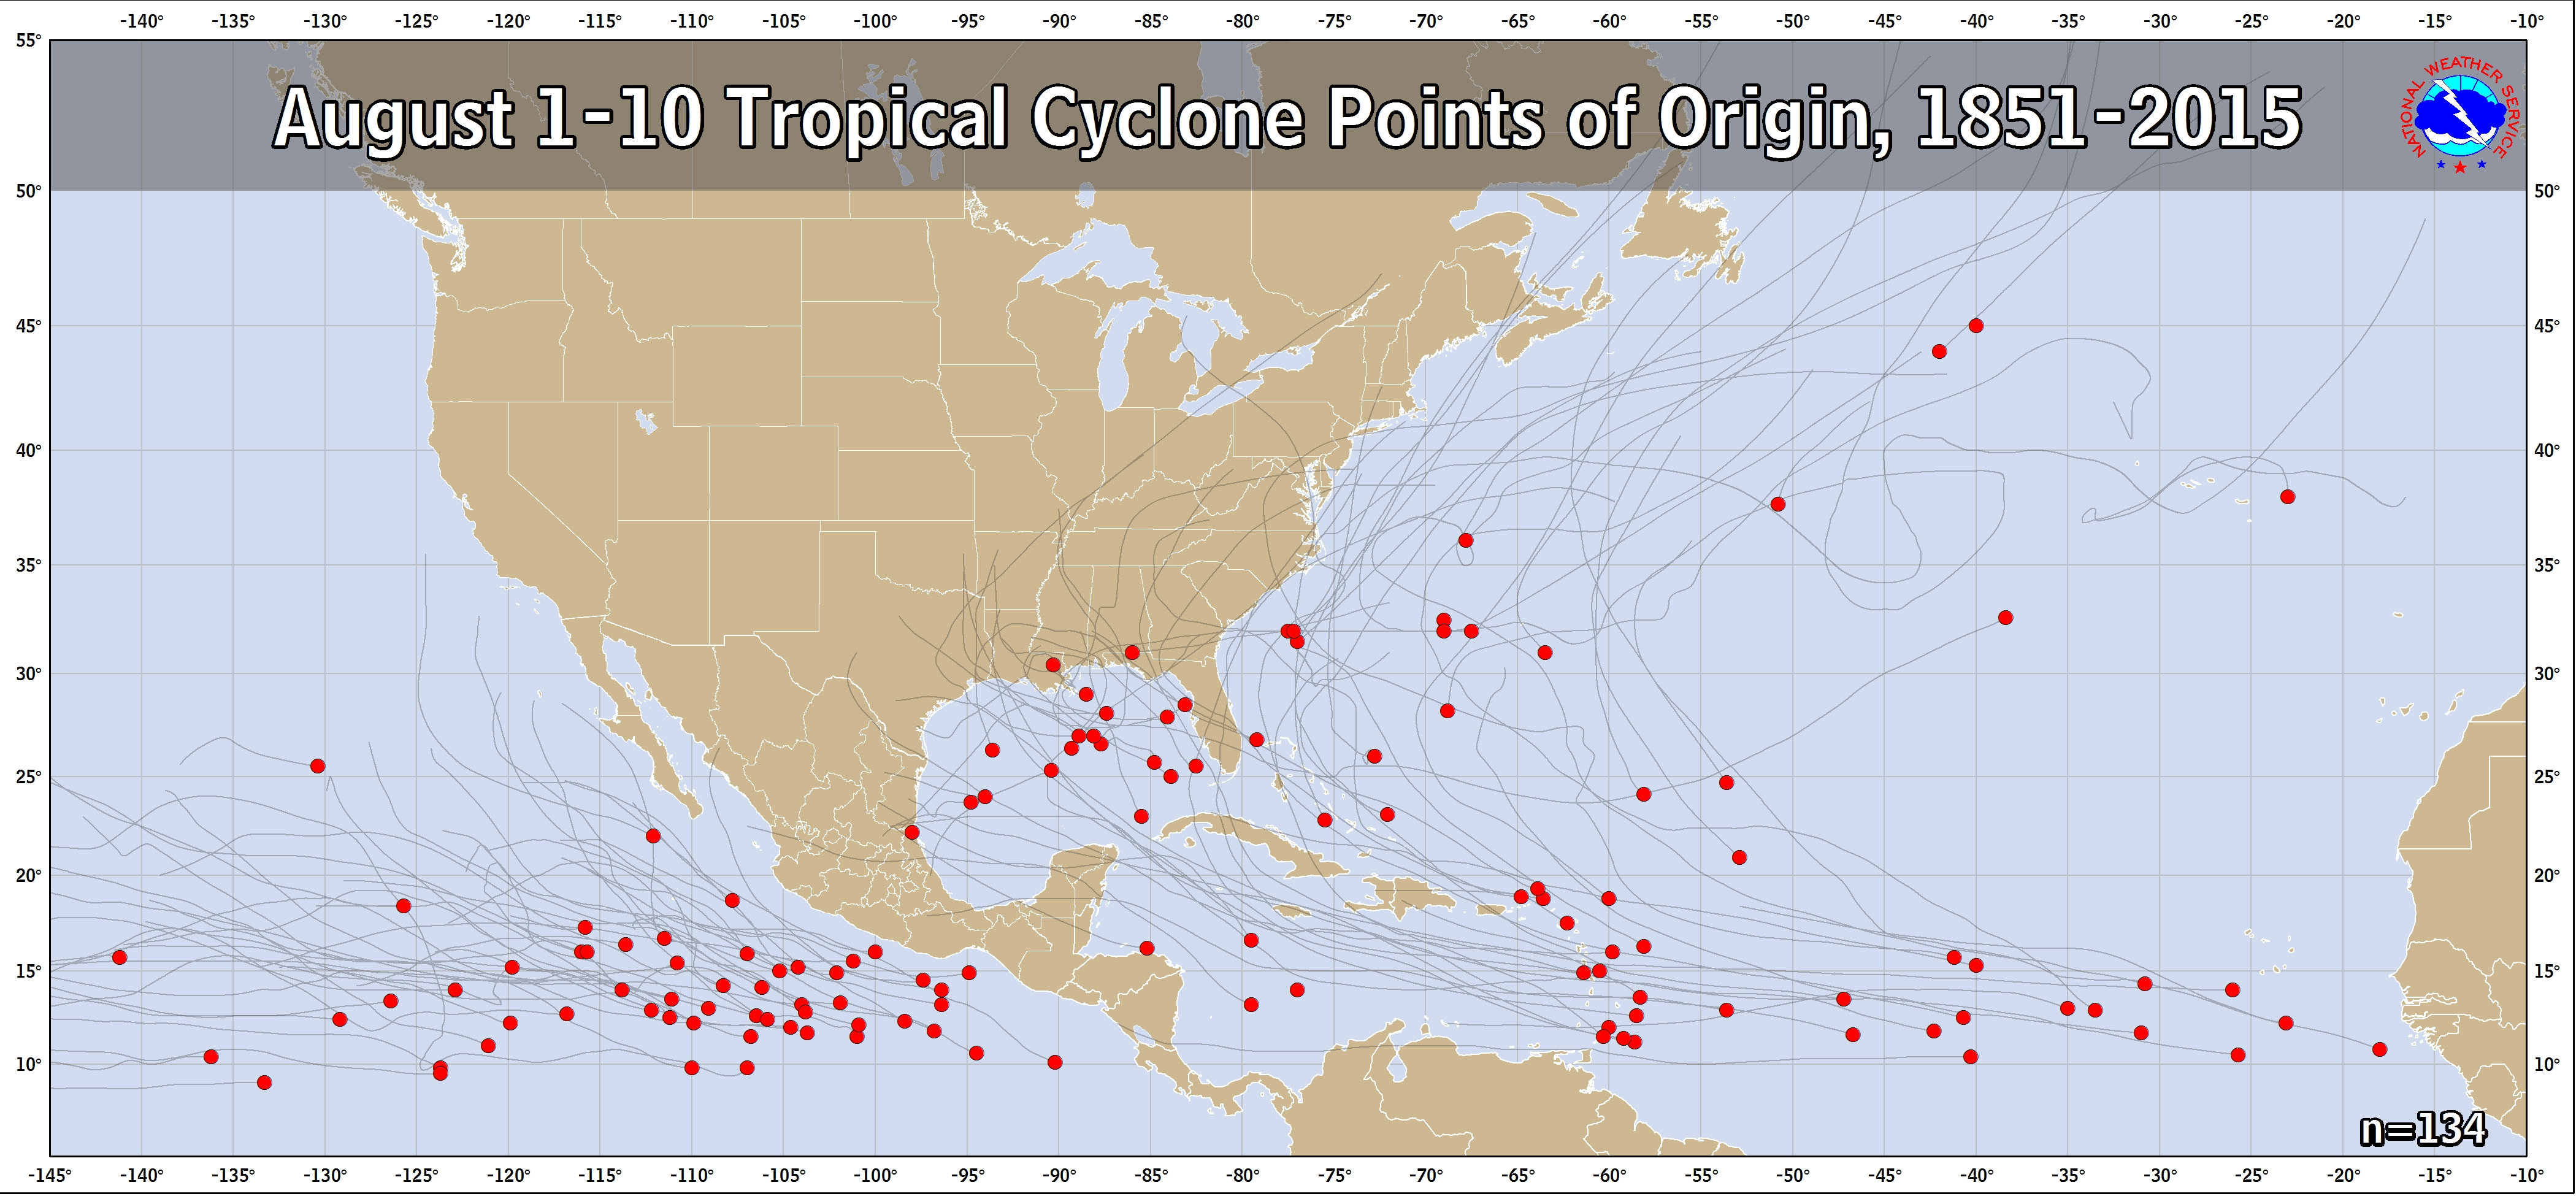 Tropical Cyclone Climatology - August 1